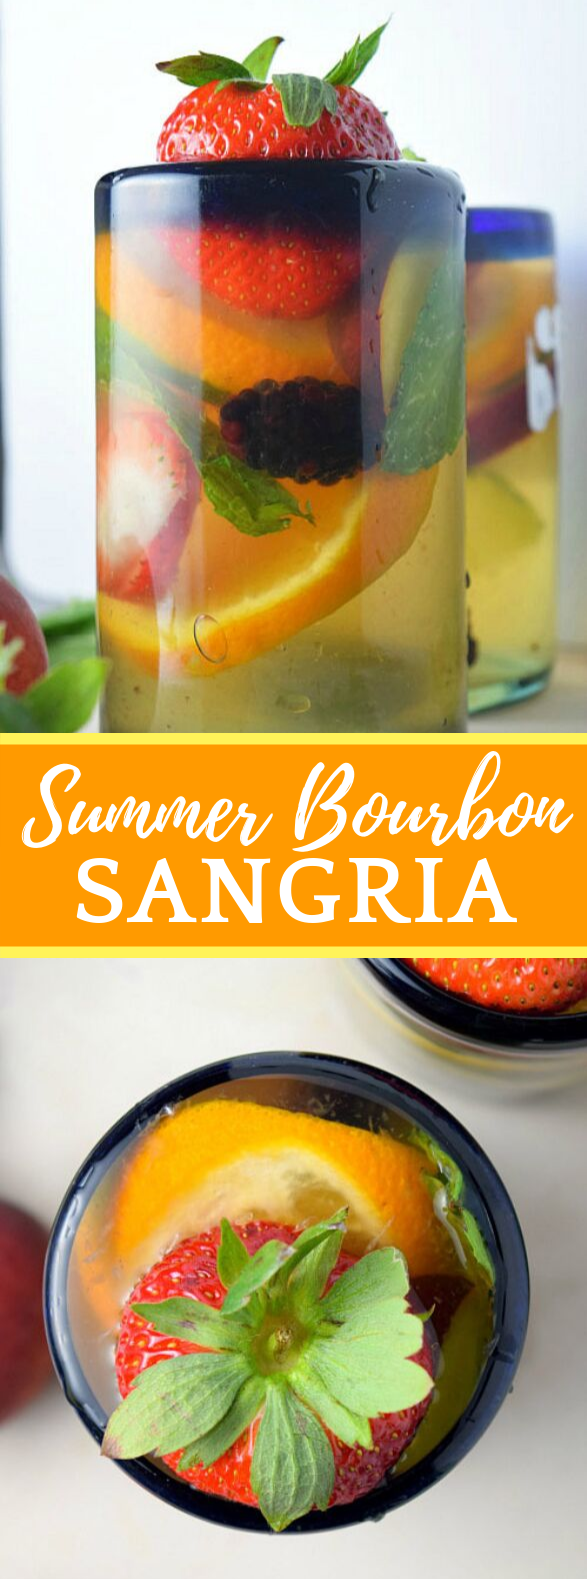 SUMMER BOURBON SANGRIA #drinks #summerdrink